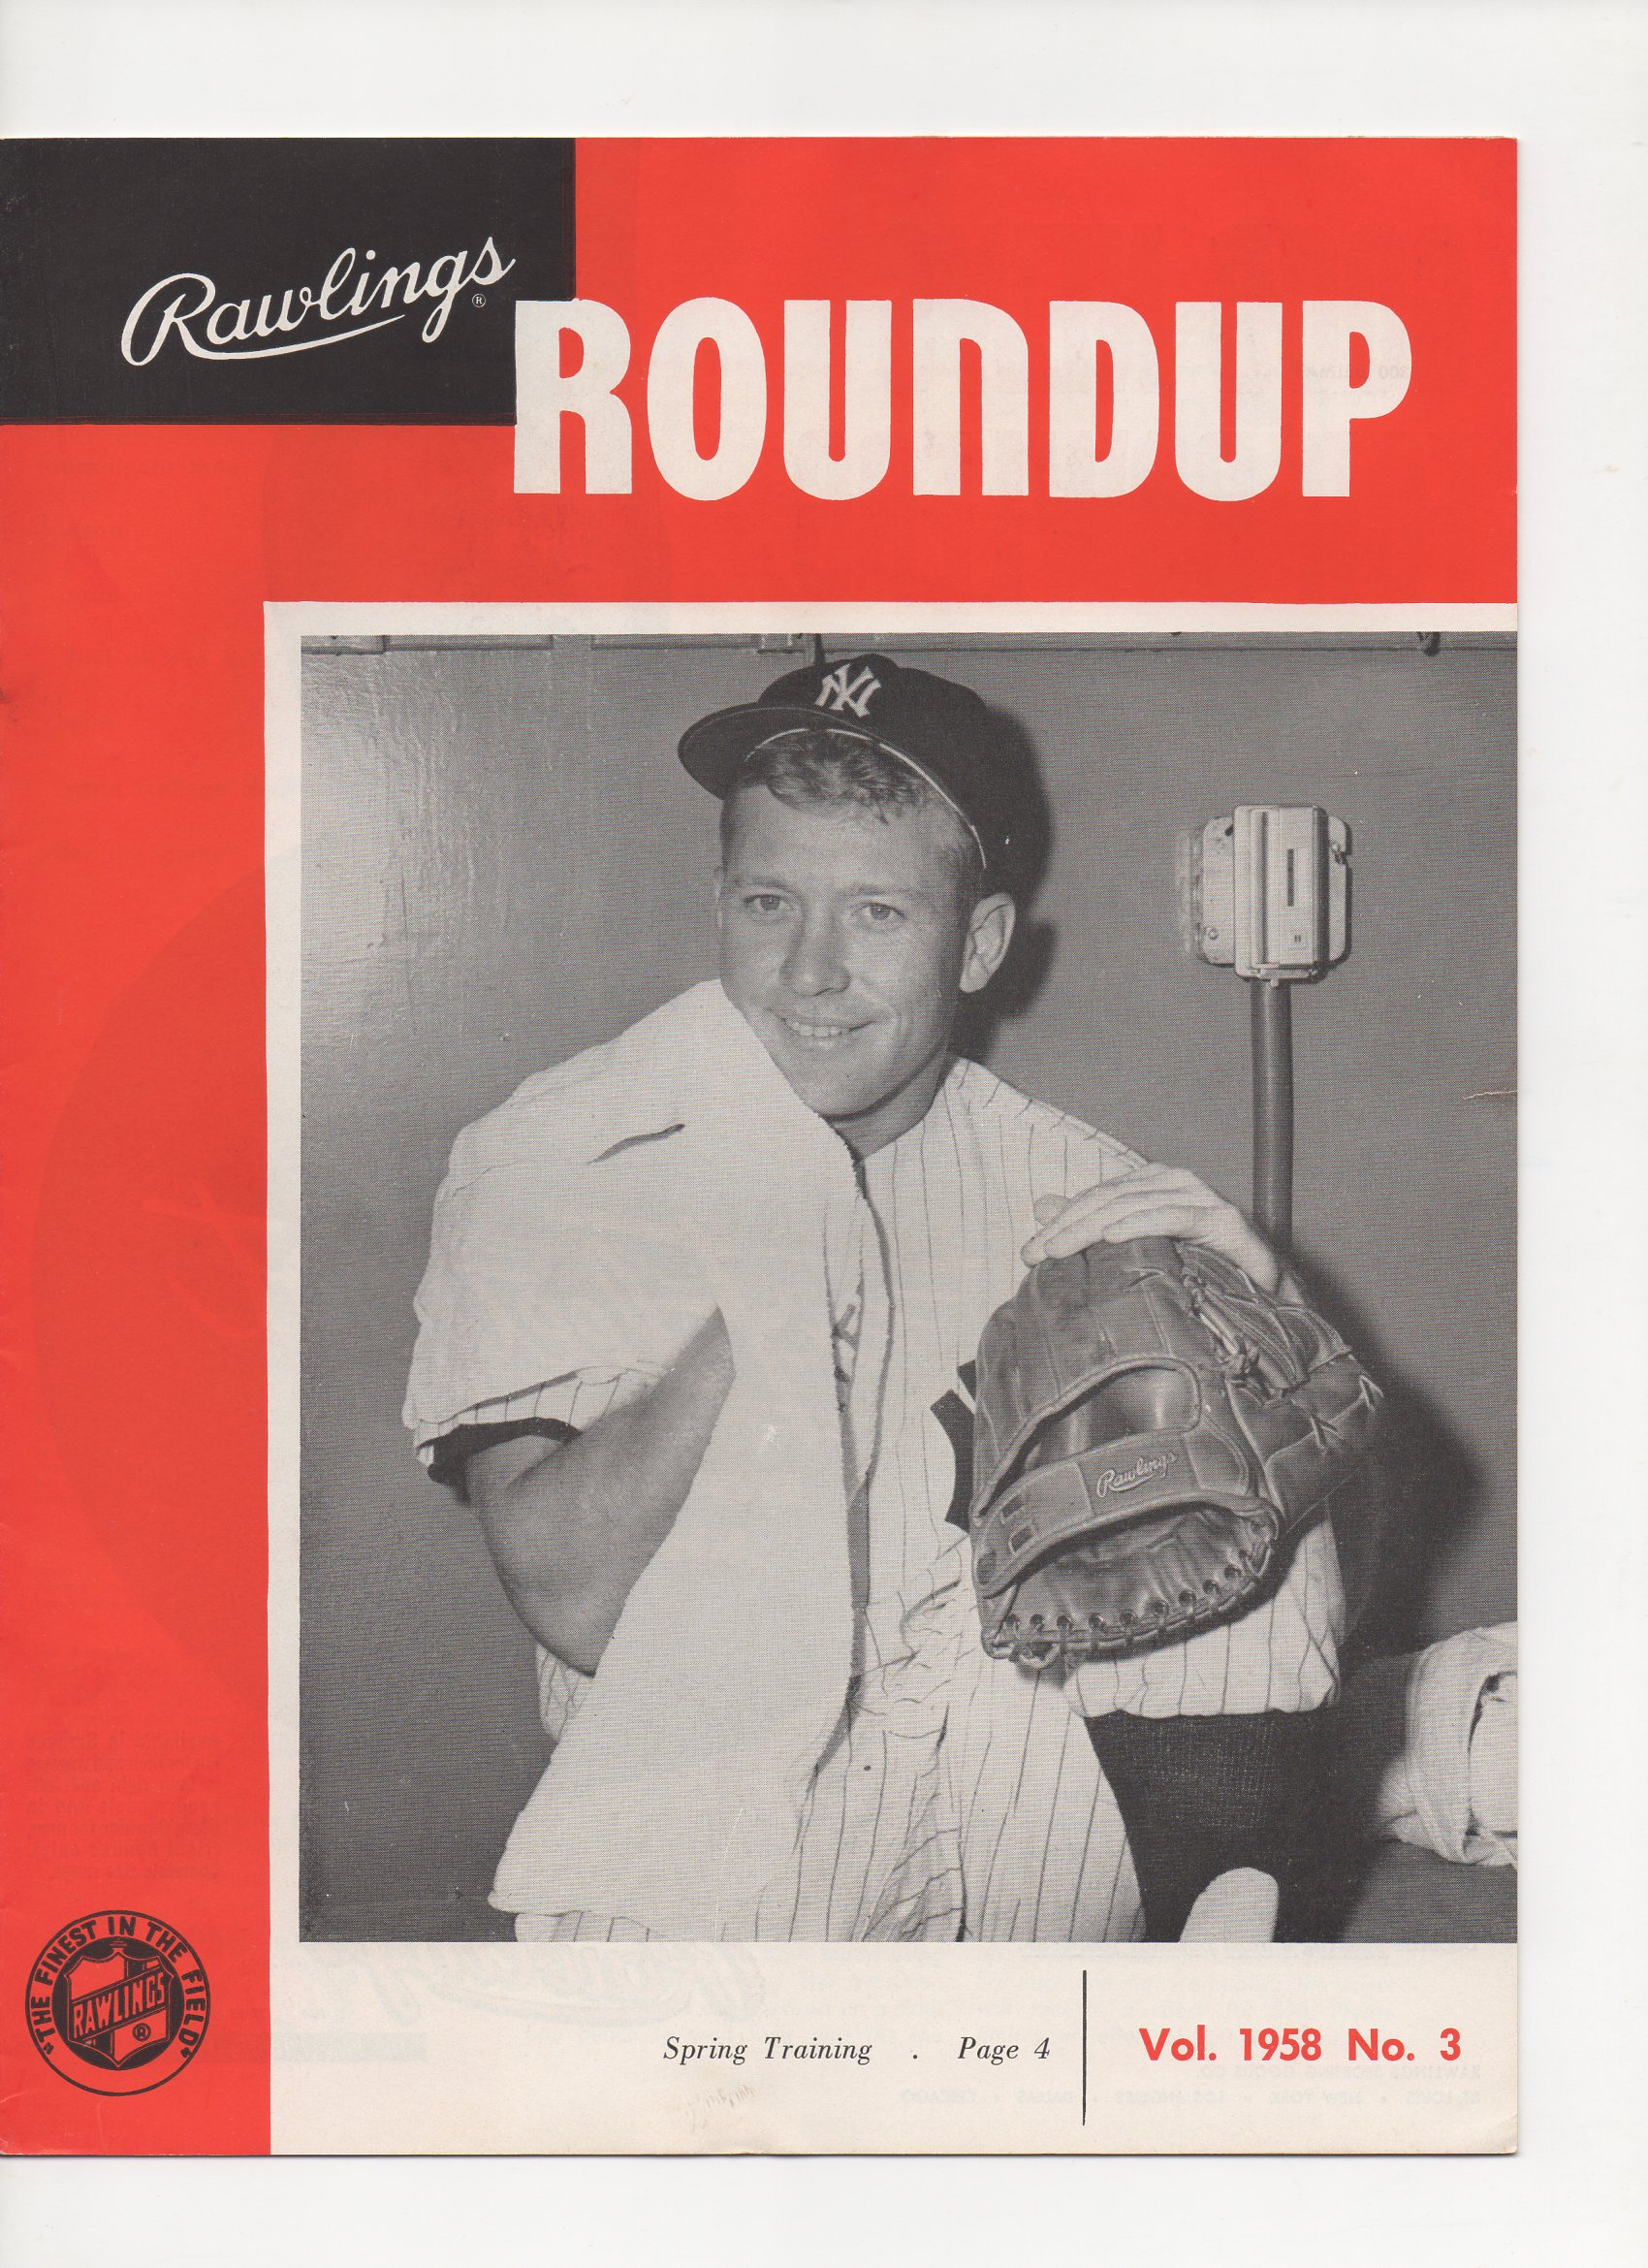 1958 rawlings roundup, vol. no. 3